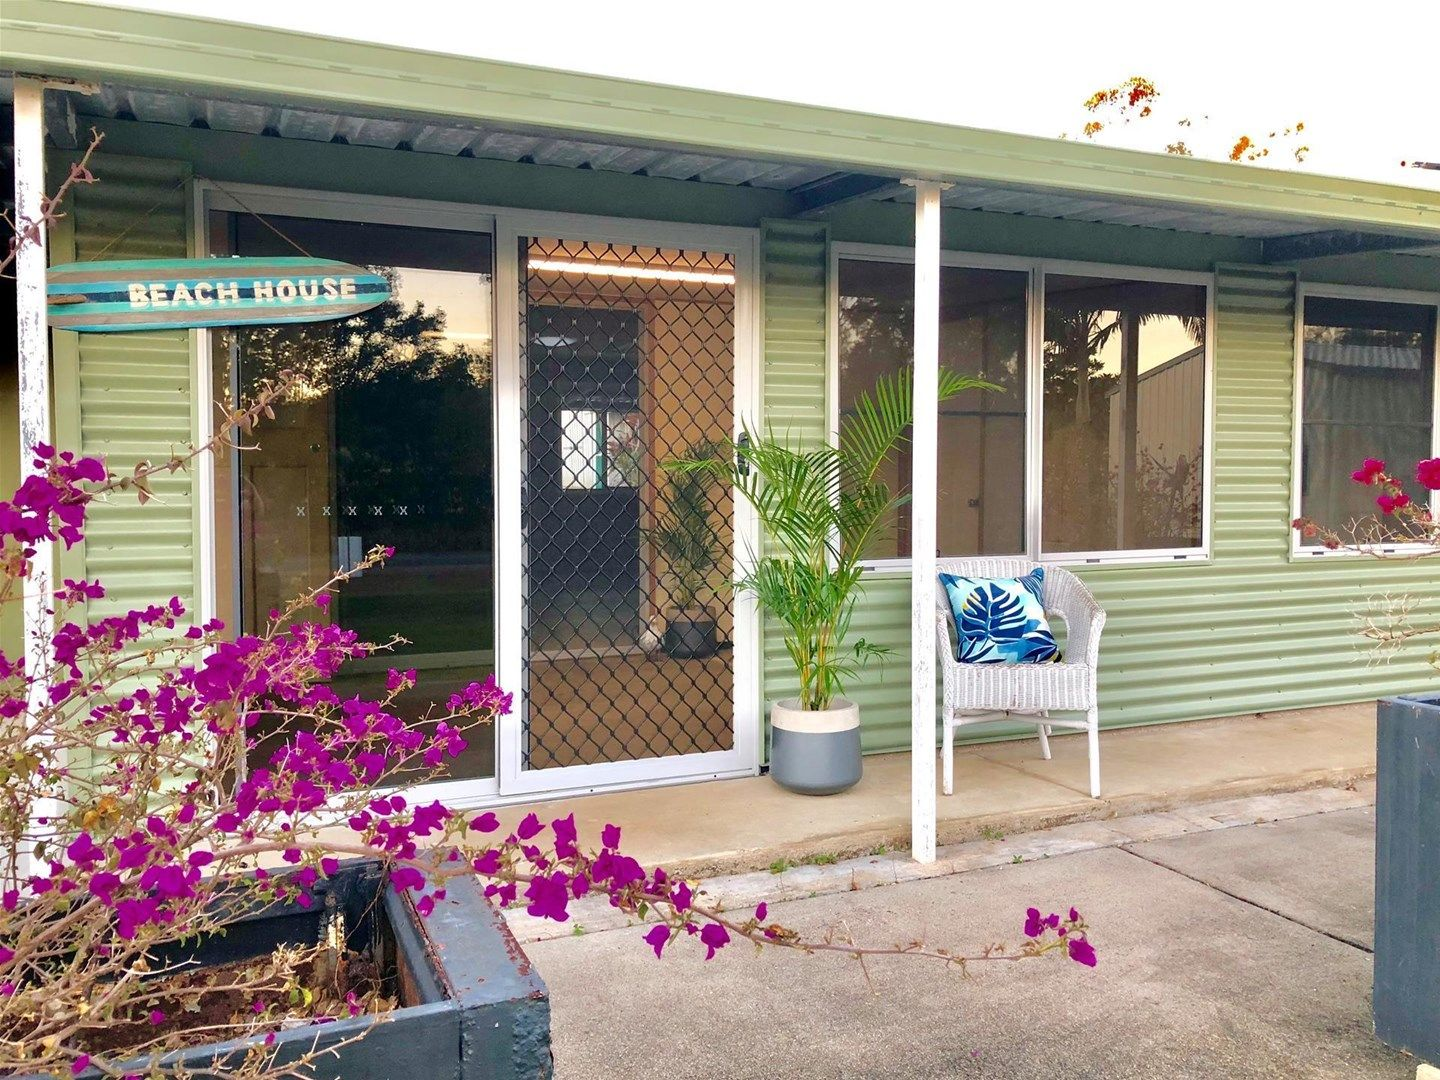 2138 Yakapari Seaforth Road, Seaforth QLD 4741, Image 0